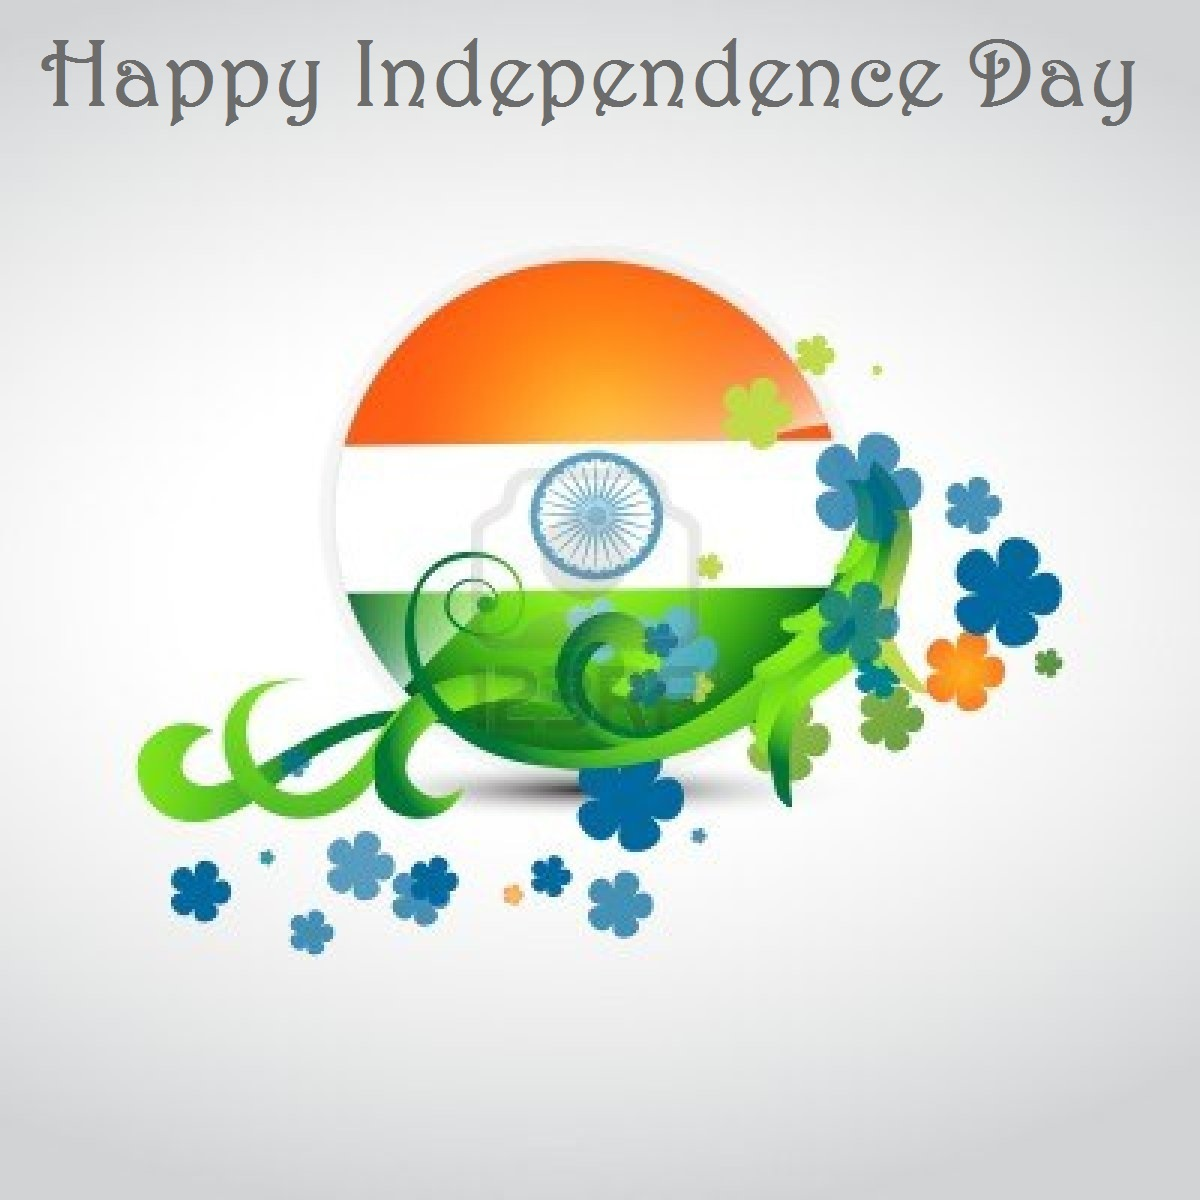 Khushi for life independence day greetings hd images for facebook see all independence day photos send e cards images graphics and animation to your beloved ones on your favorite social networking sites like myspace kristyandbryce Gallery